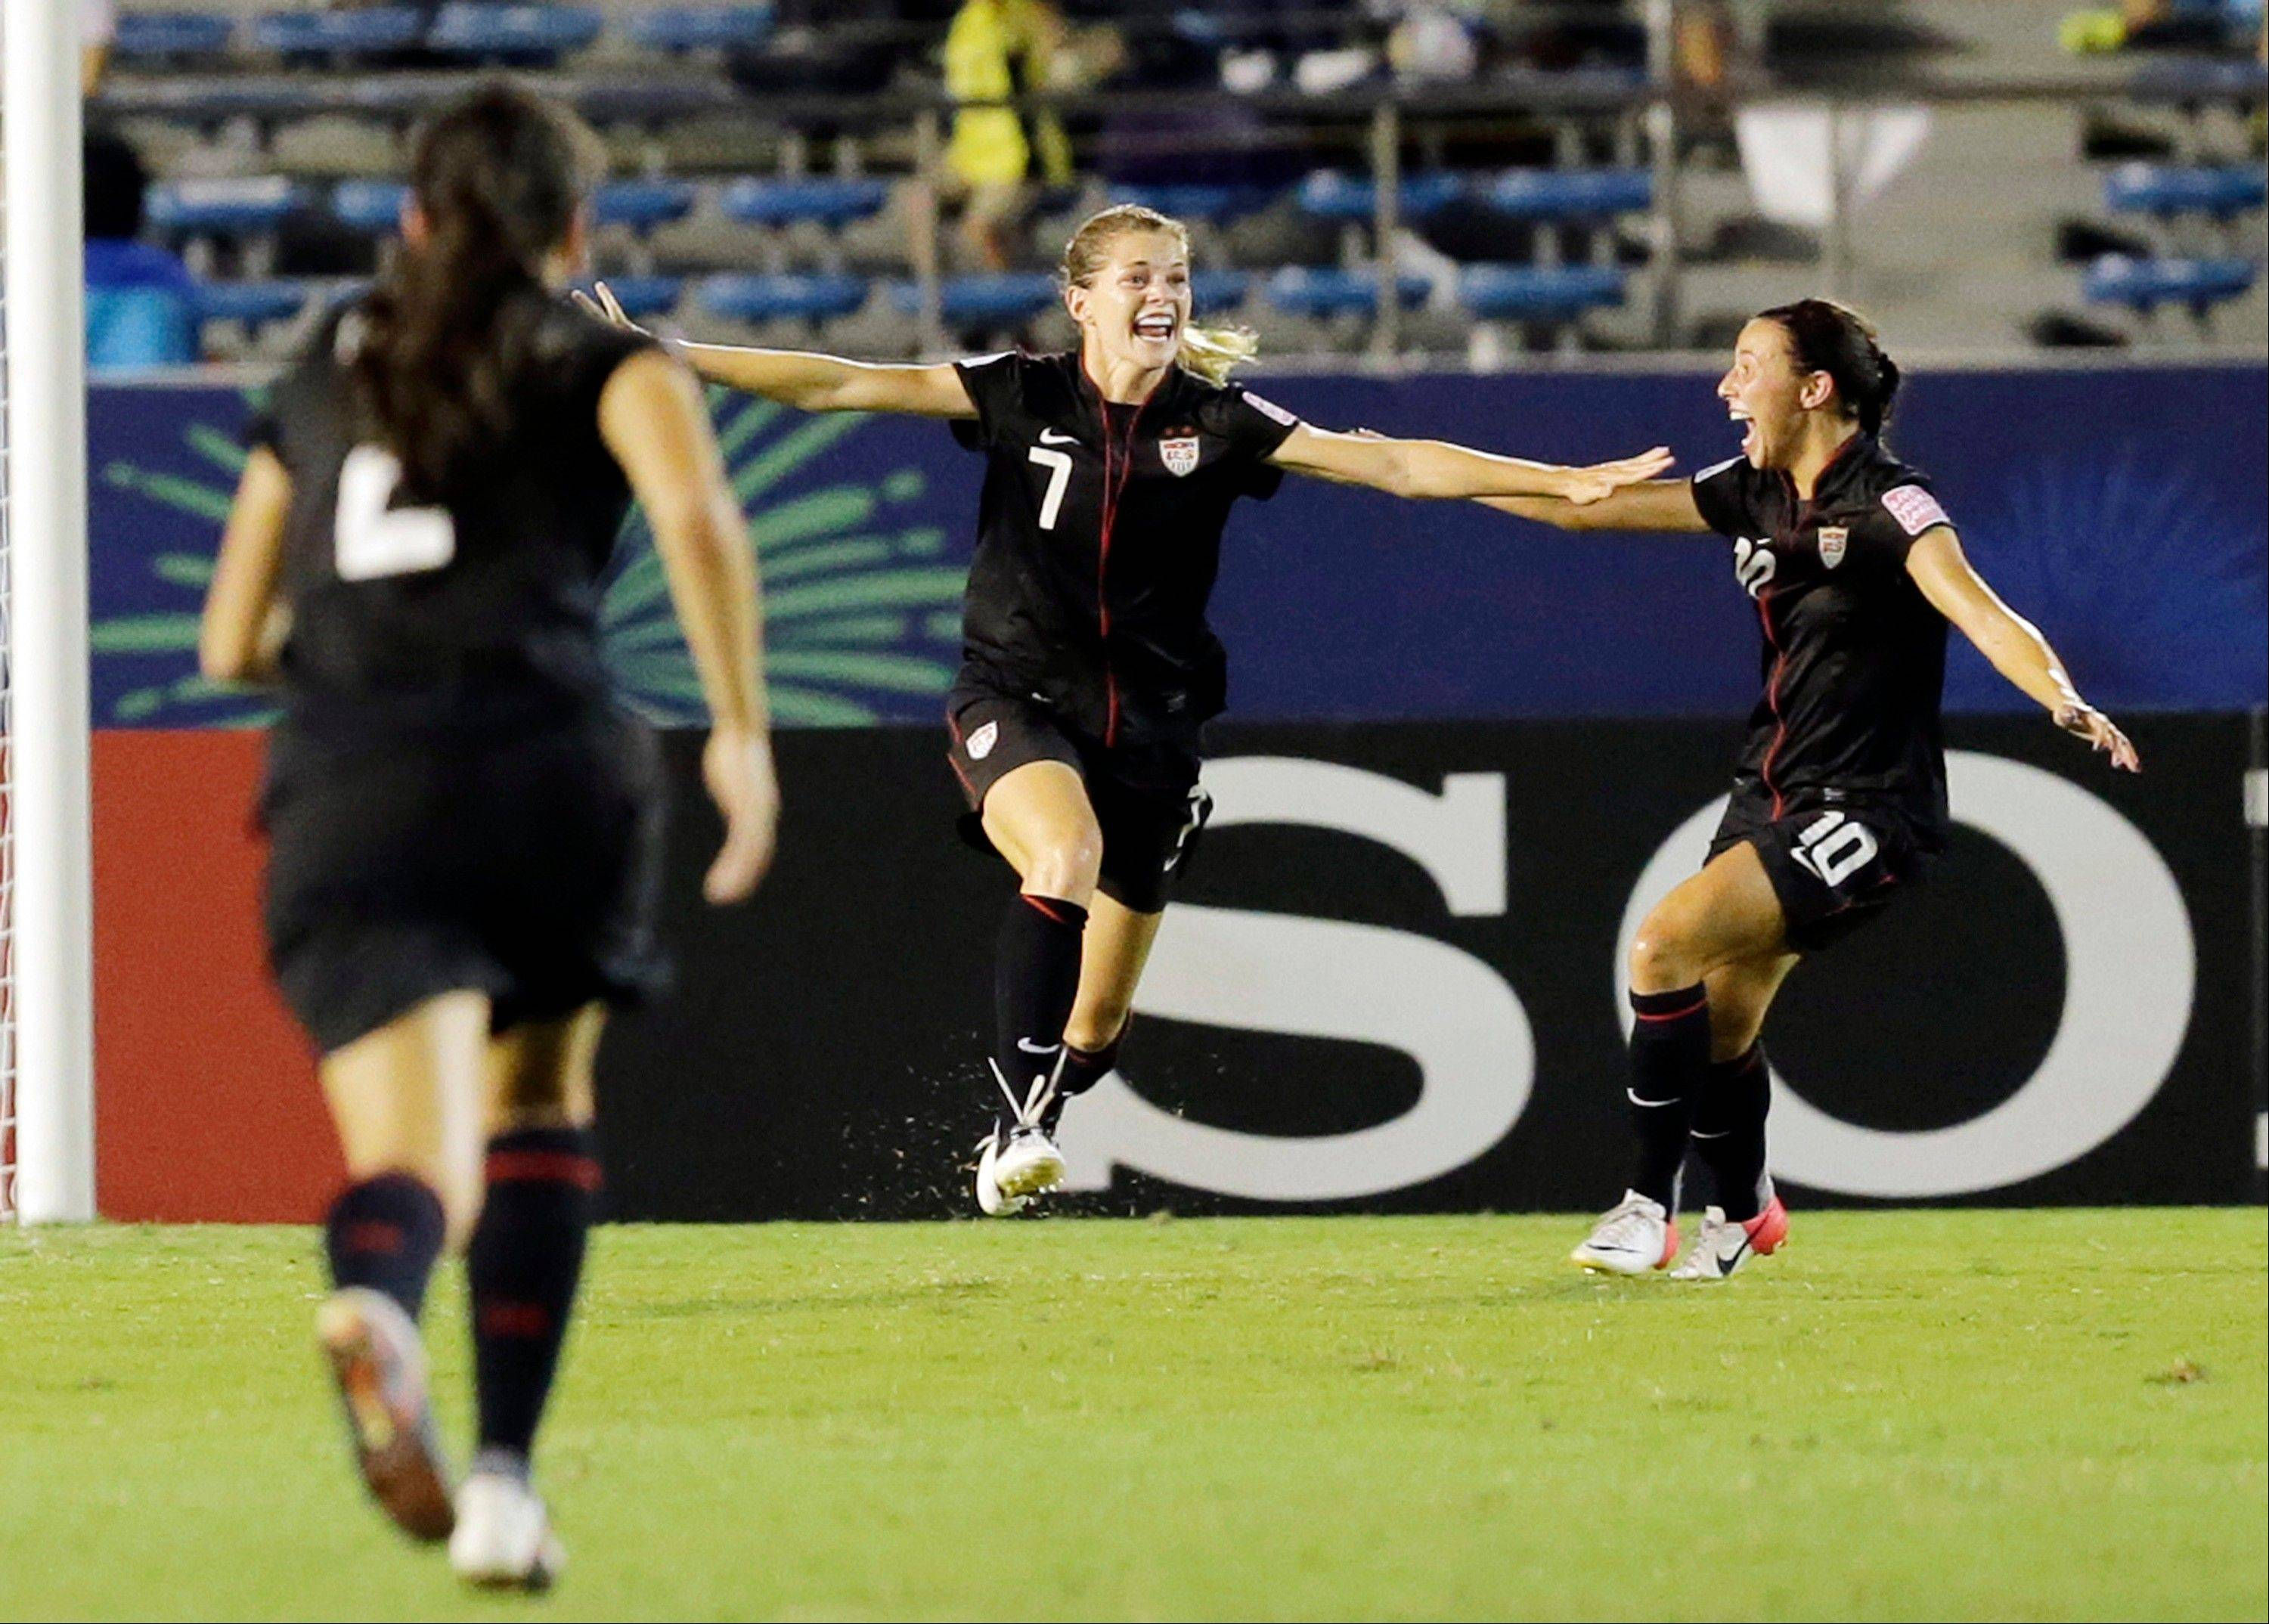 Kealia Ohai of United States,center, celebrates with Vanessa Di Bernardo (10) of Naperville after Ohai scored a goal during final match of the U20 Women's World Cup against Germany in Tokyo on Saturday.